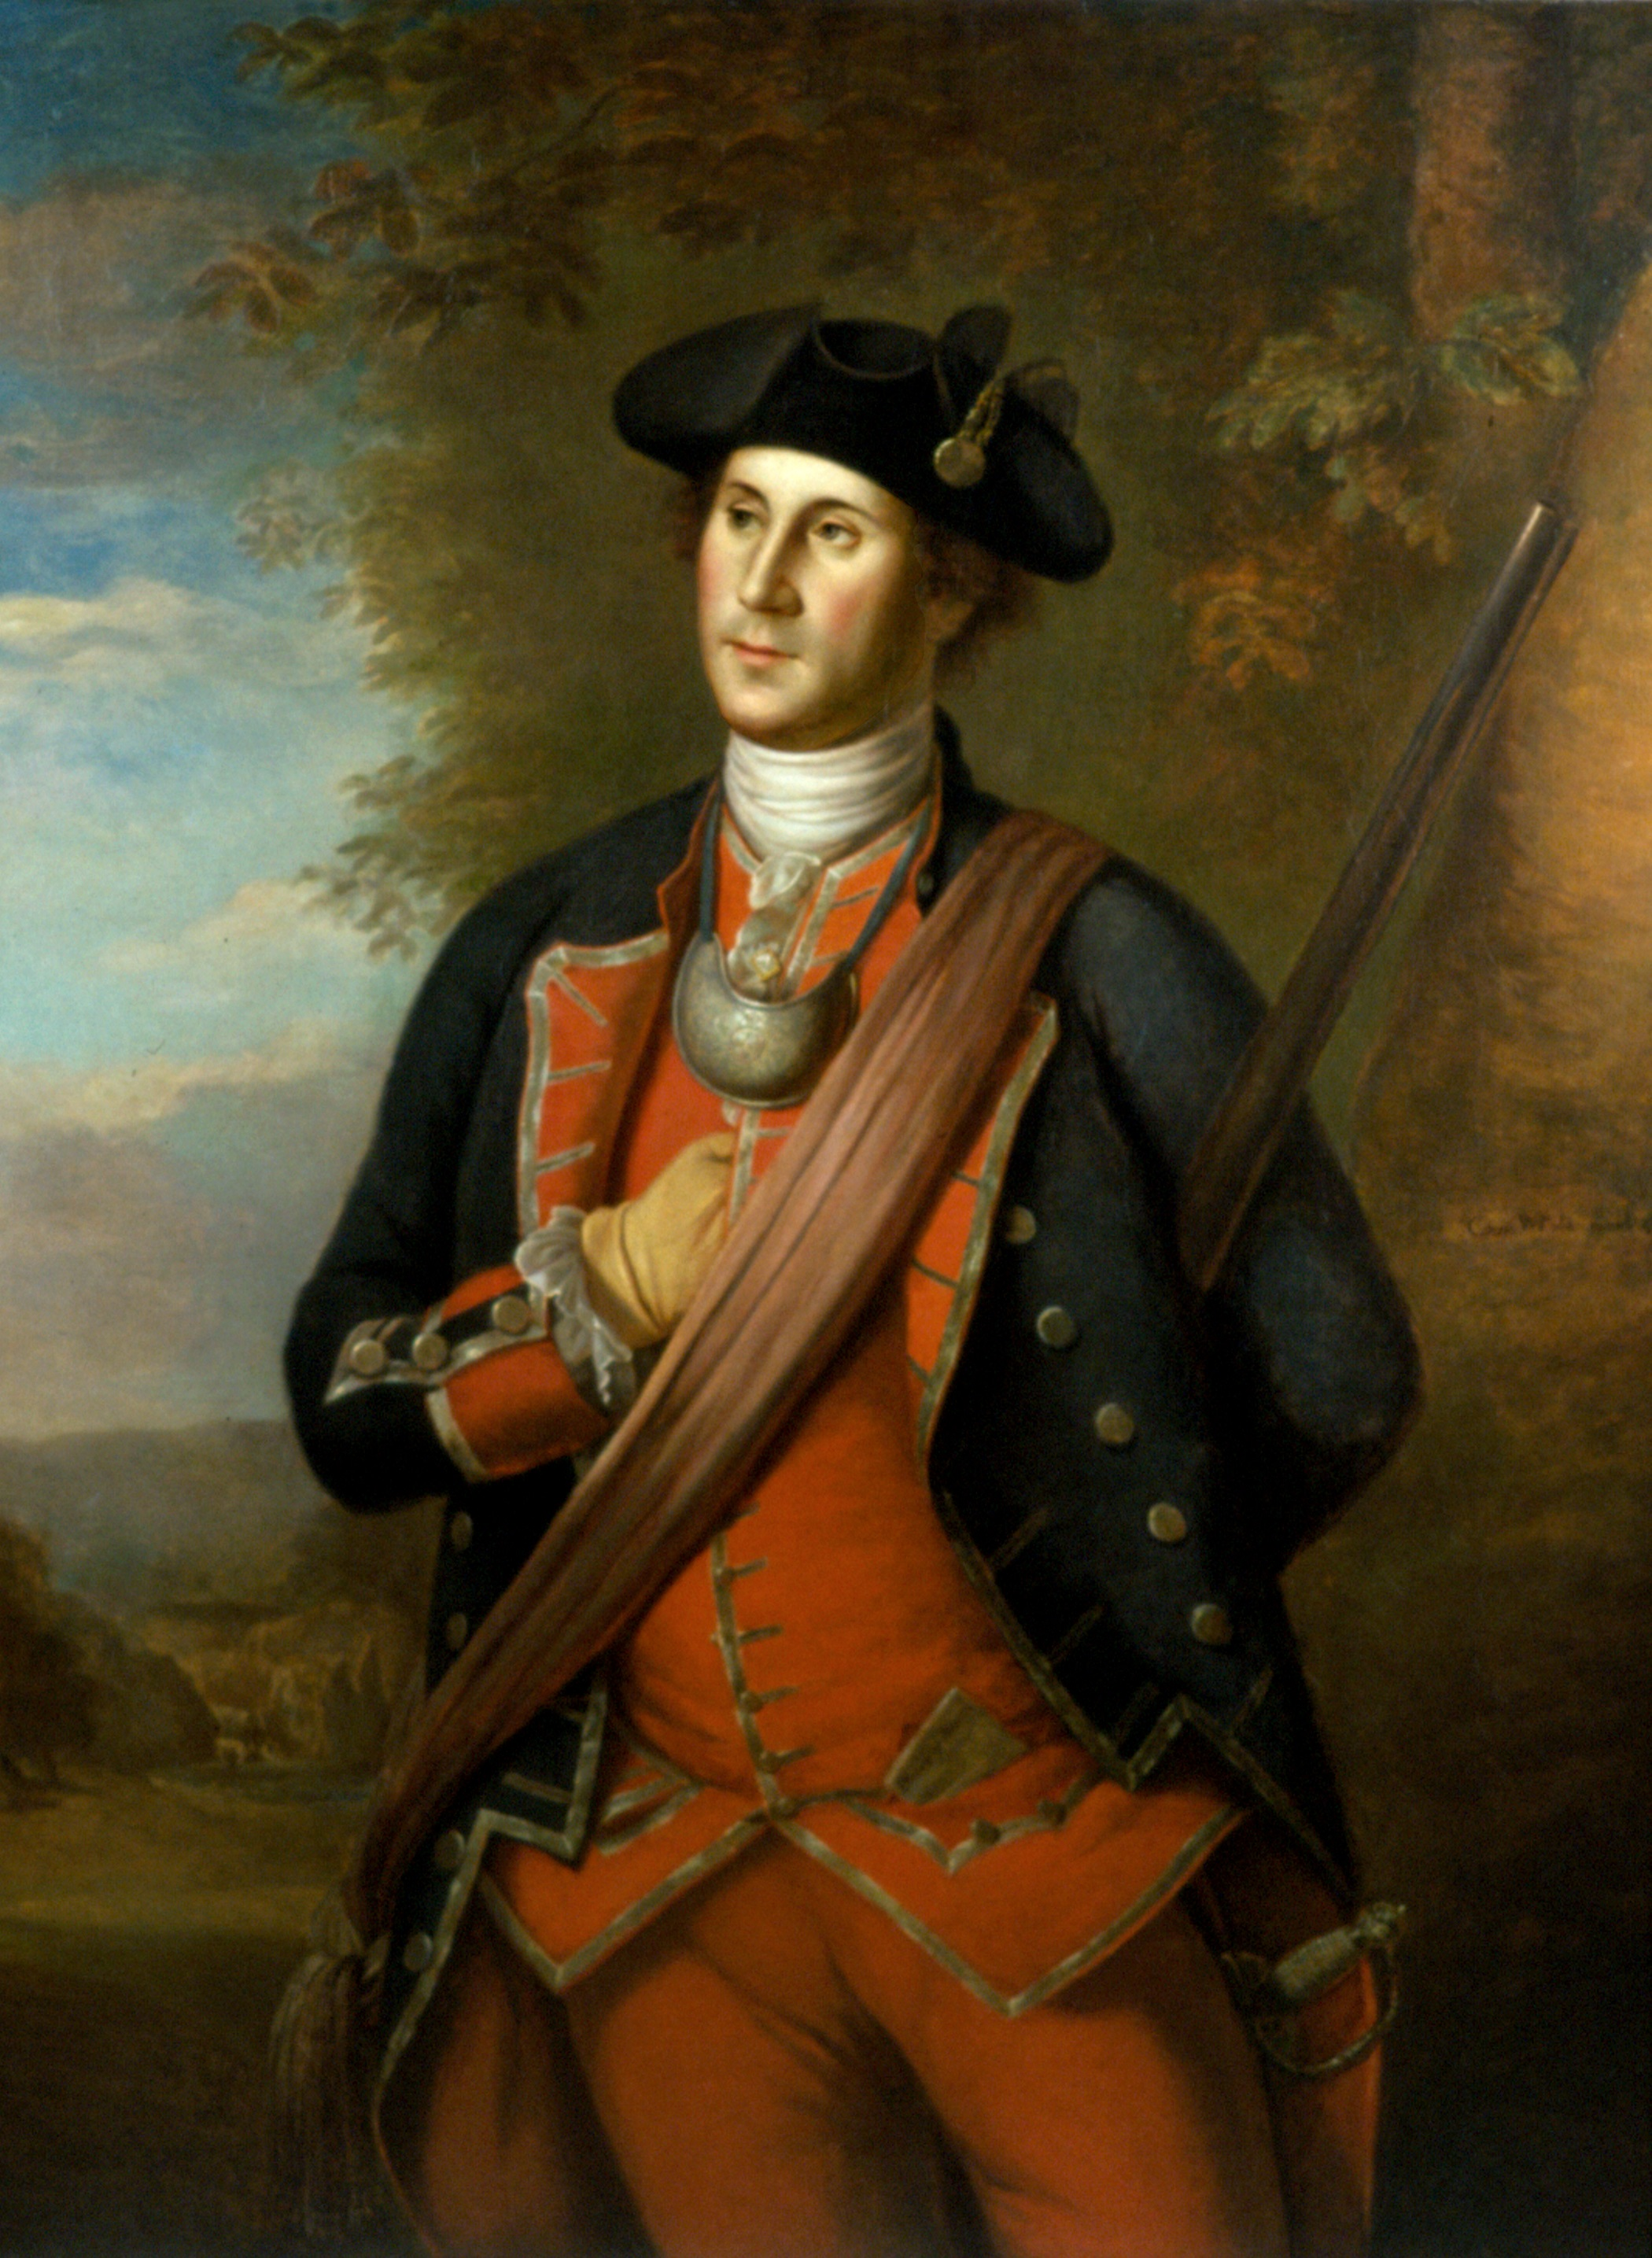 george washington middot george washington s mount vernon george washington during the french and n war as painted by charles willson peale in 1772